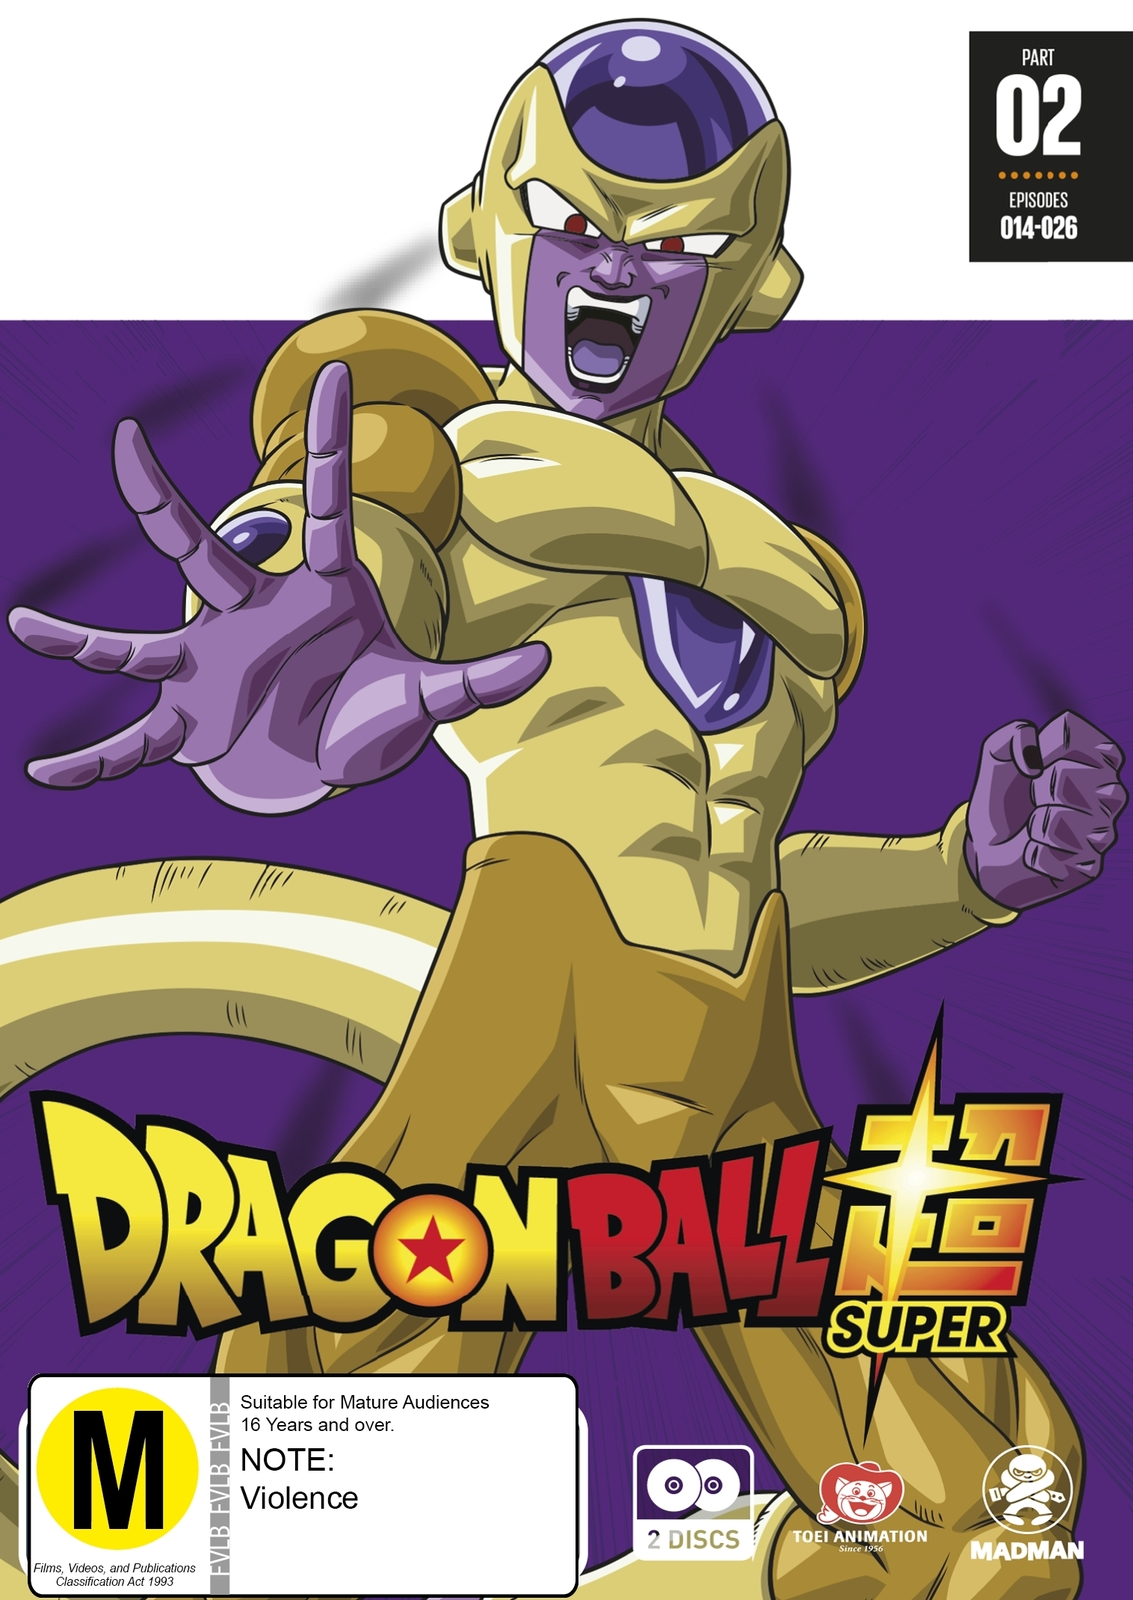 Dragon Ball Super - Part 2 (Eps 14 - 26) on DVD image